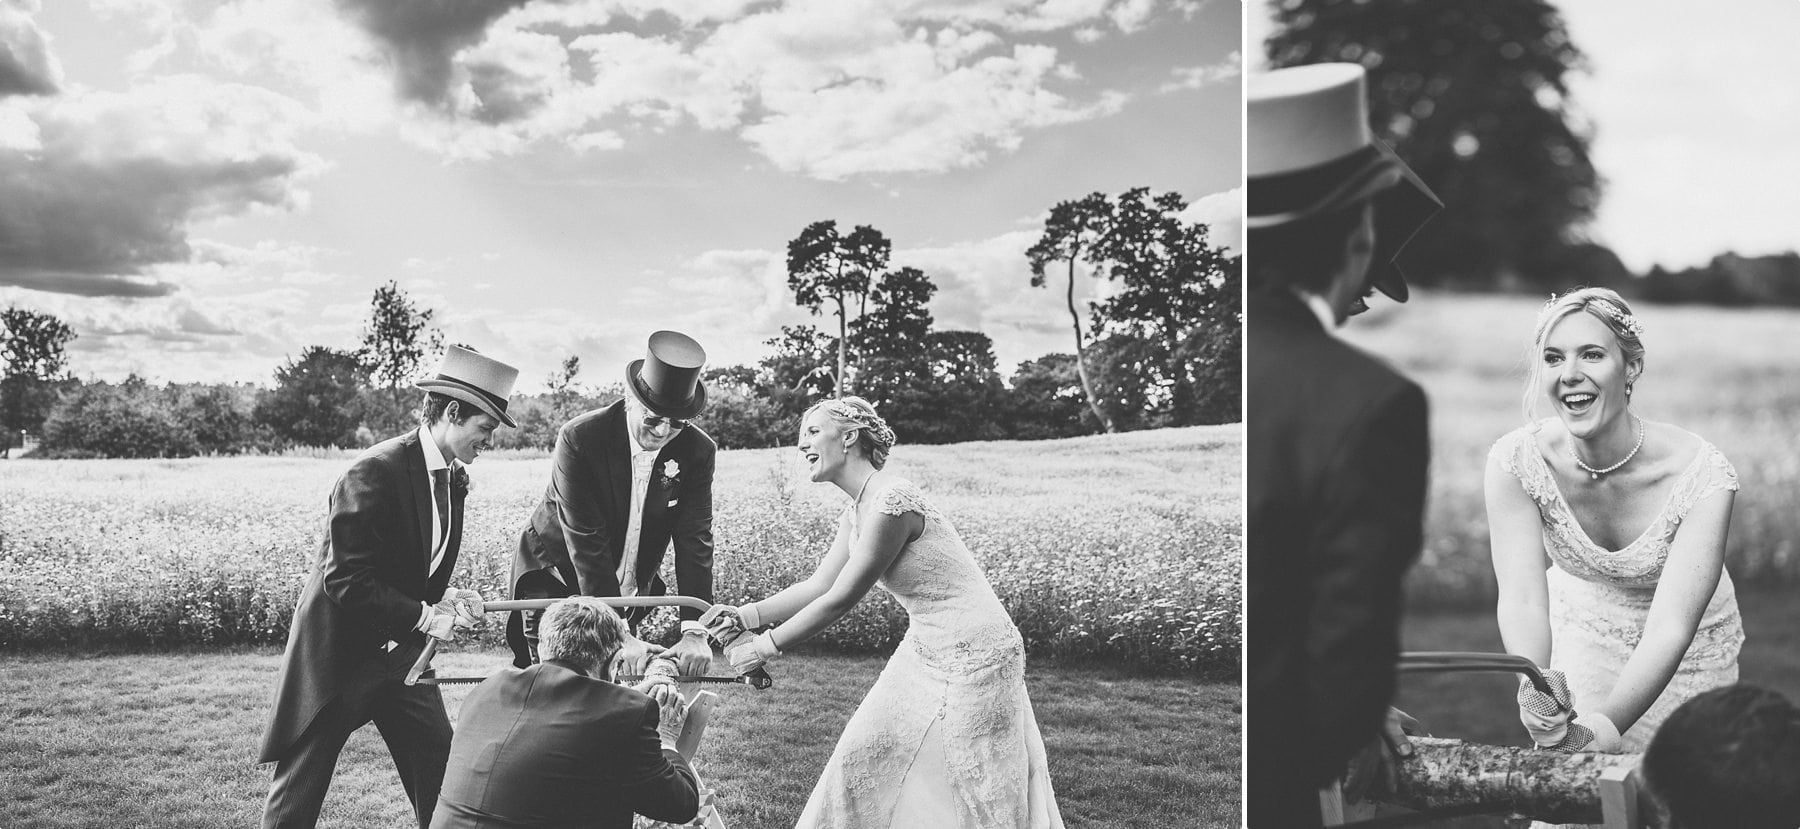 Coworth Park Barn summer wedding photography of bride and groom sawing through a log together to prove they can work as a team